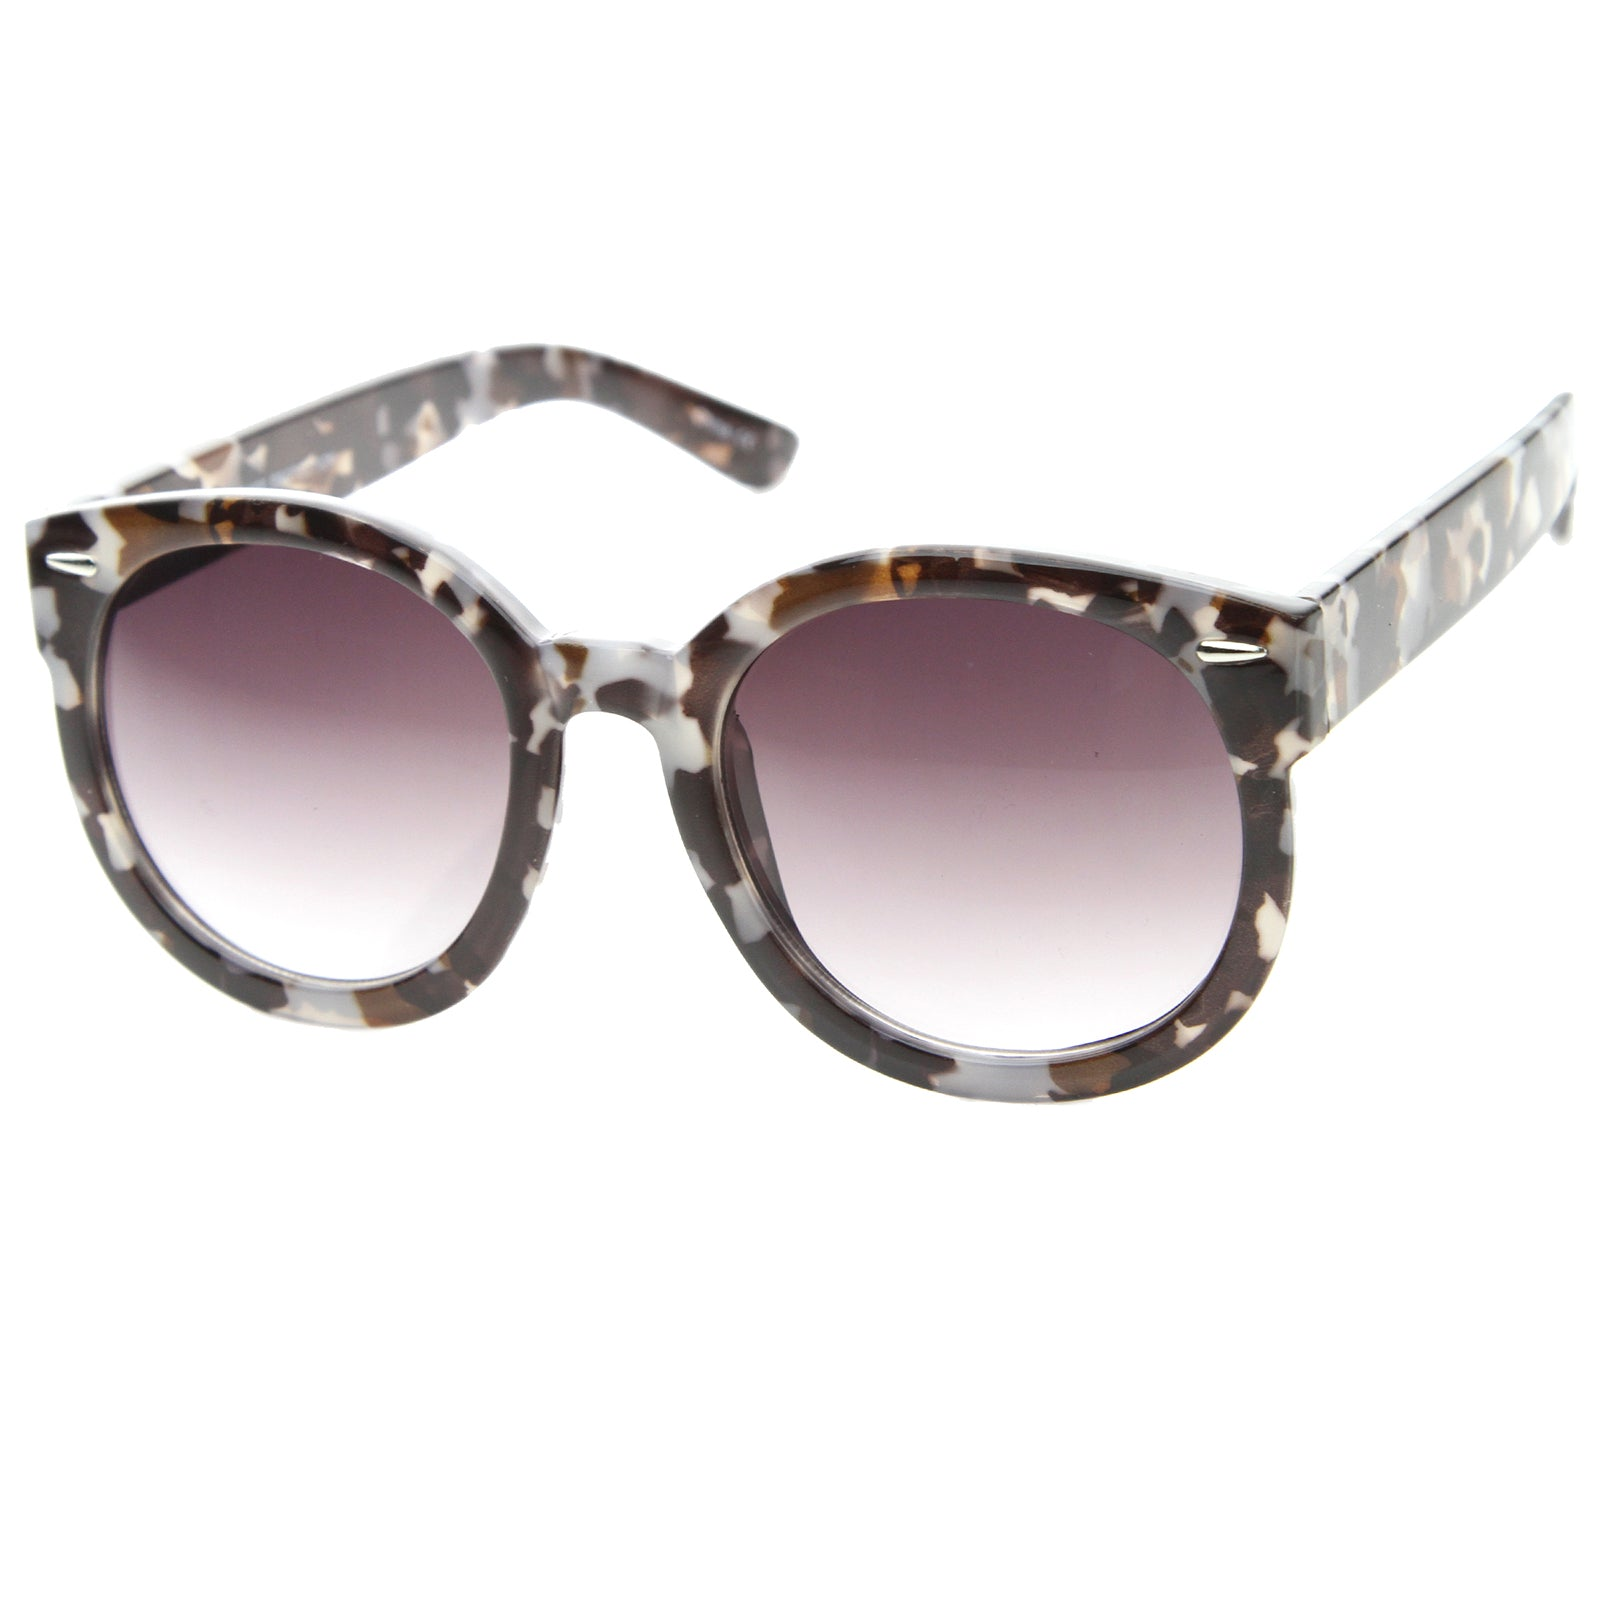 Womens Oversized Sunglasses With UV400 Protected Composite Lens - sunglass.la - 2